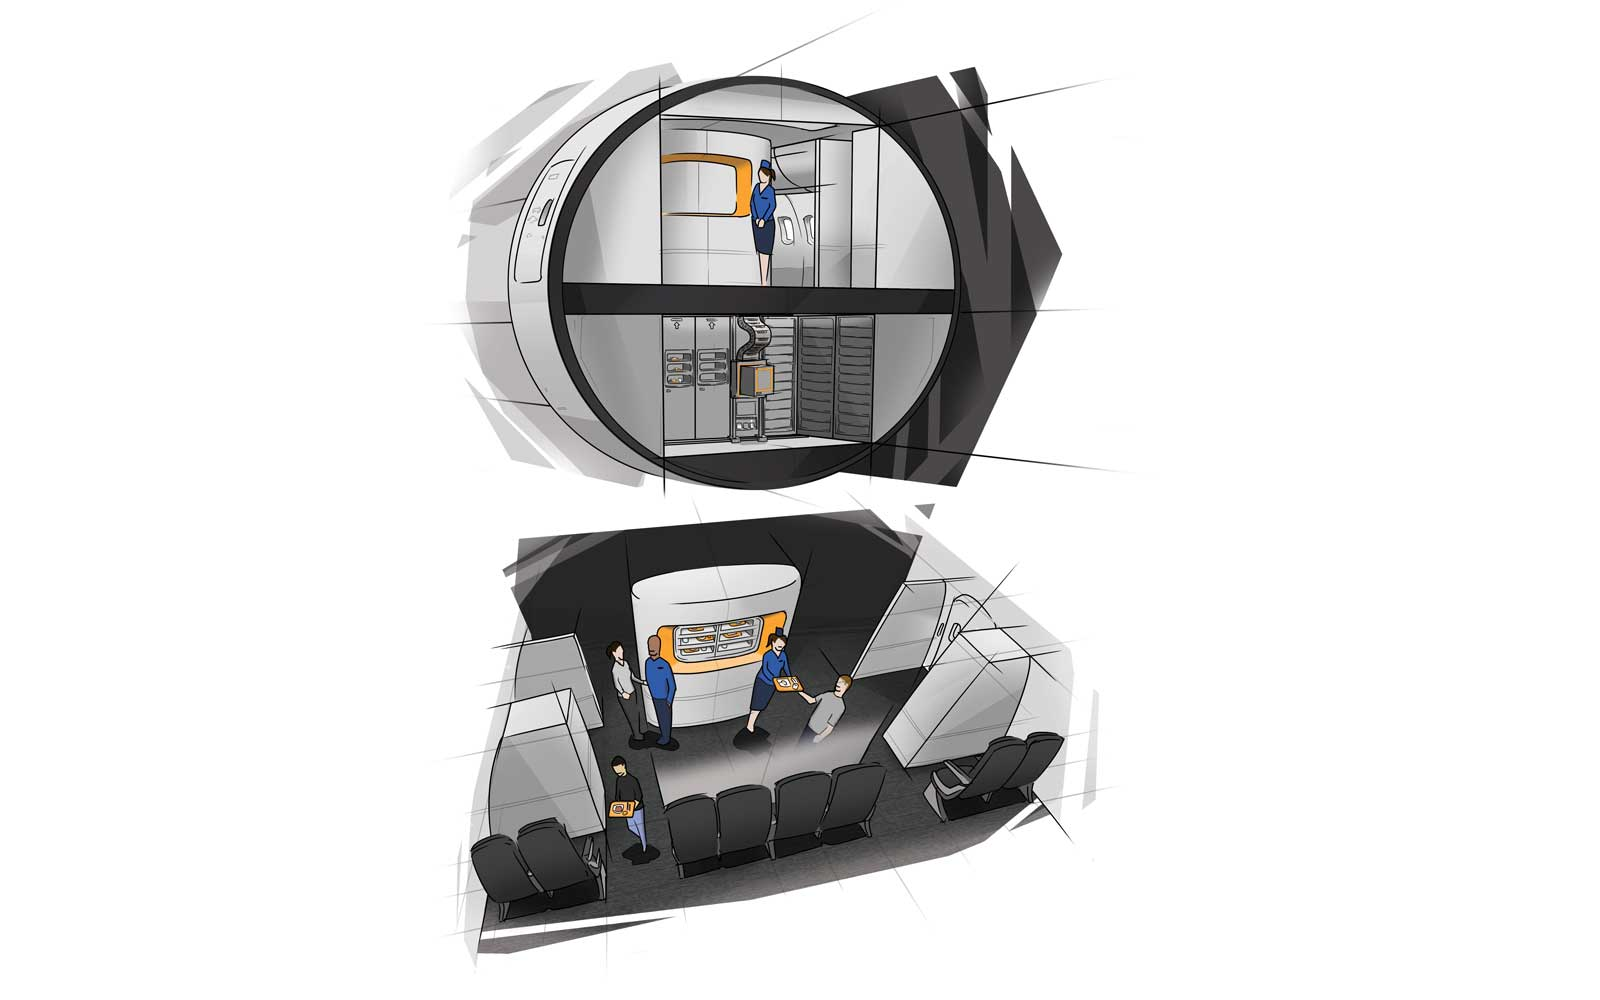 TEAGUE Airplane Galley Concepts